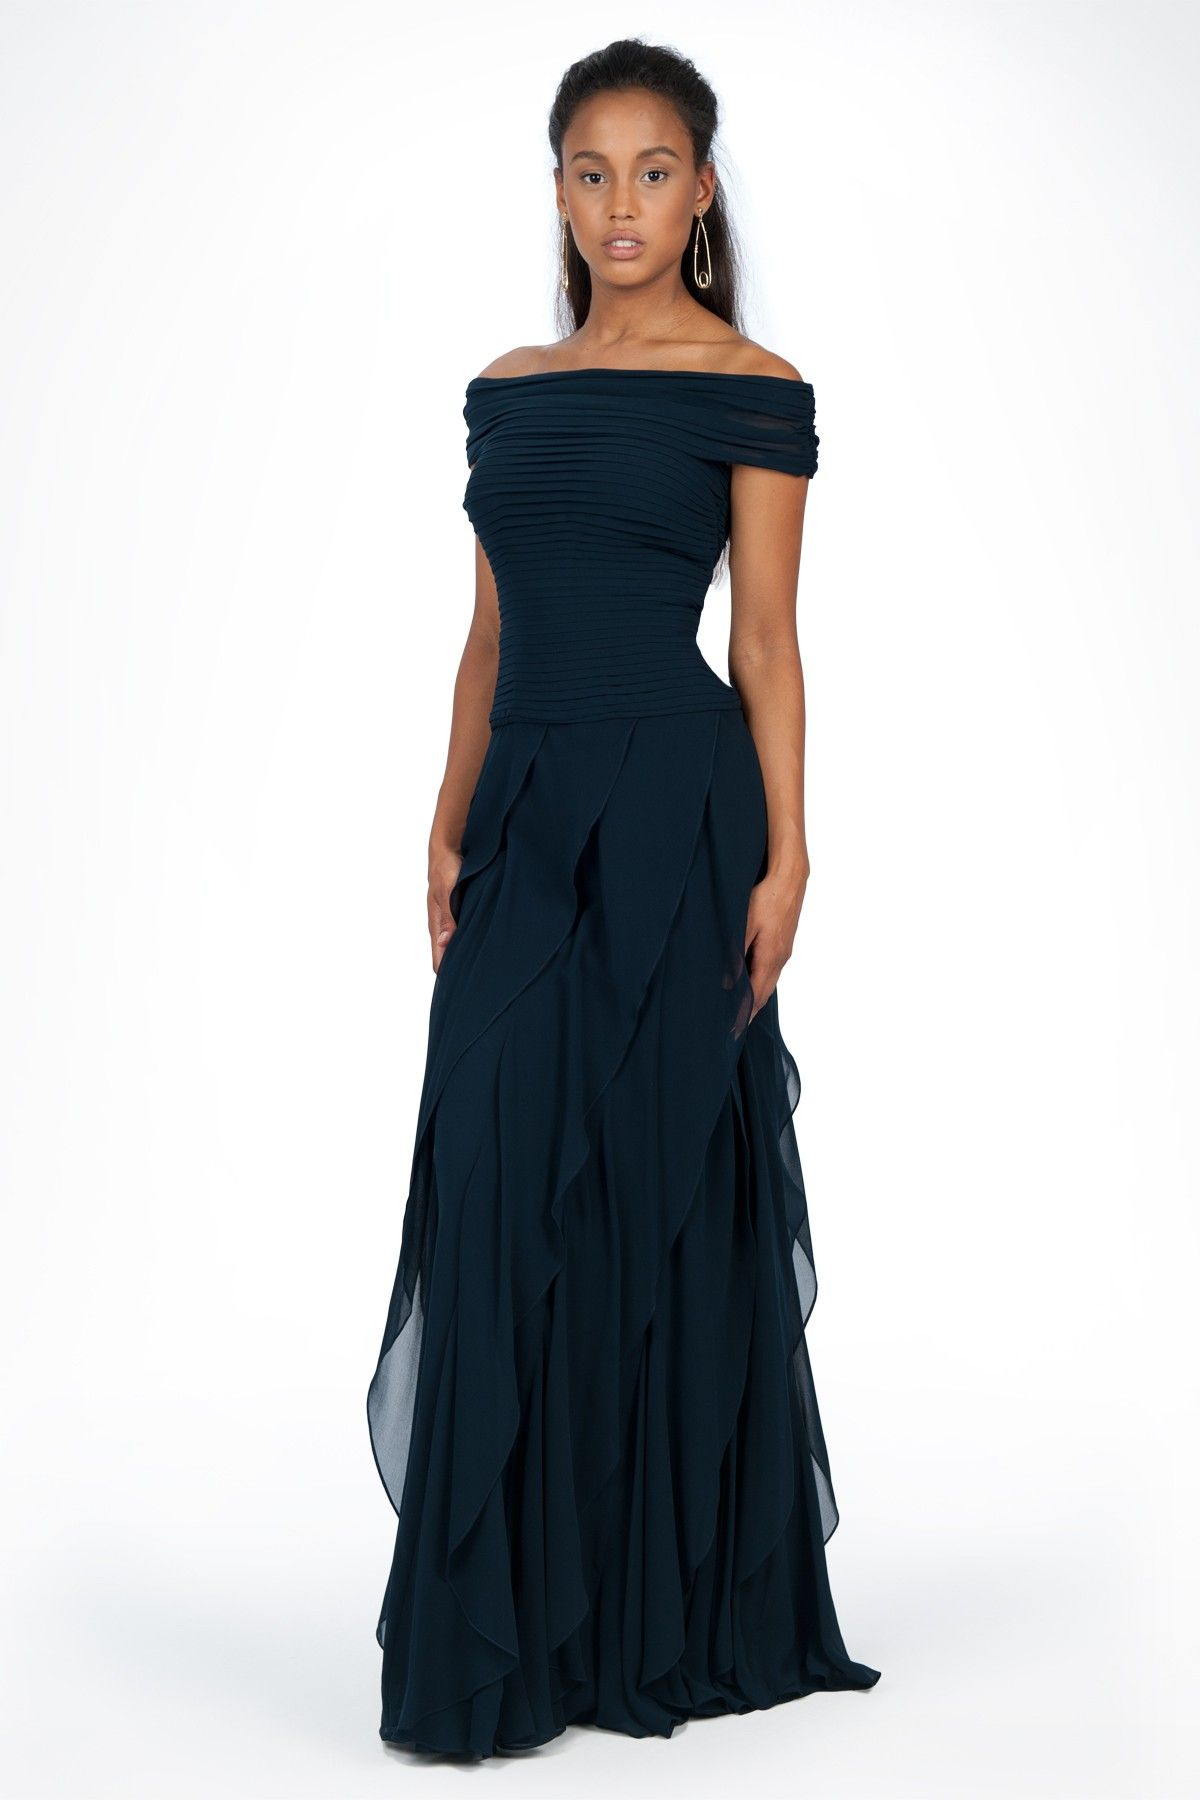 Chiffon Off Shoulder Flounce Gown in Navy - Evening Gowns - Evening ...